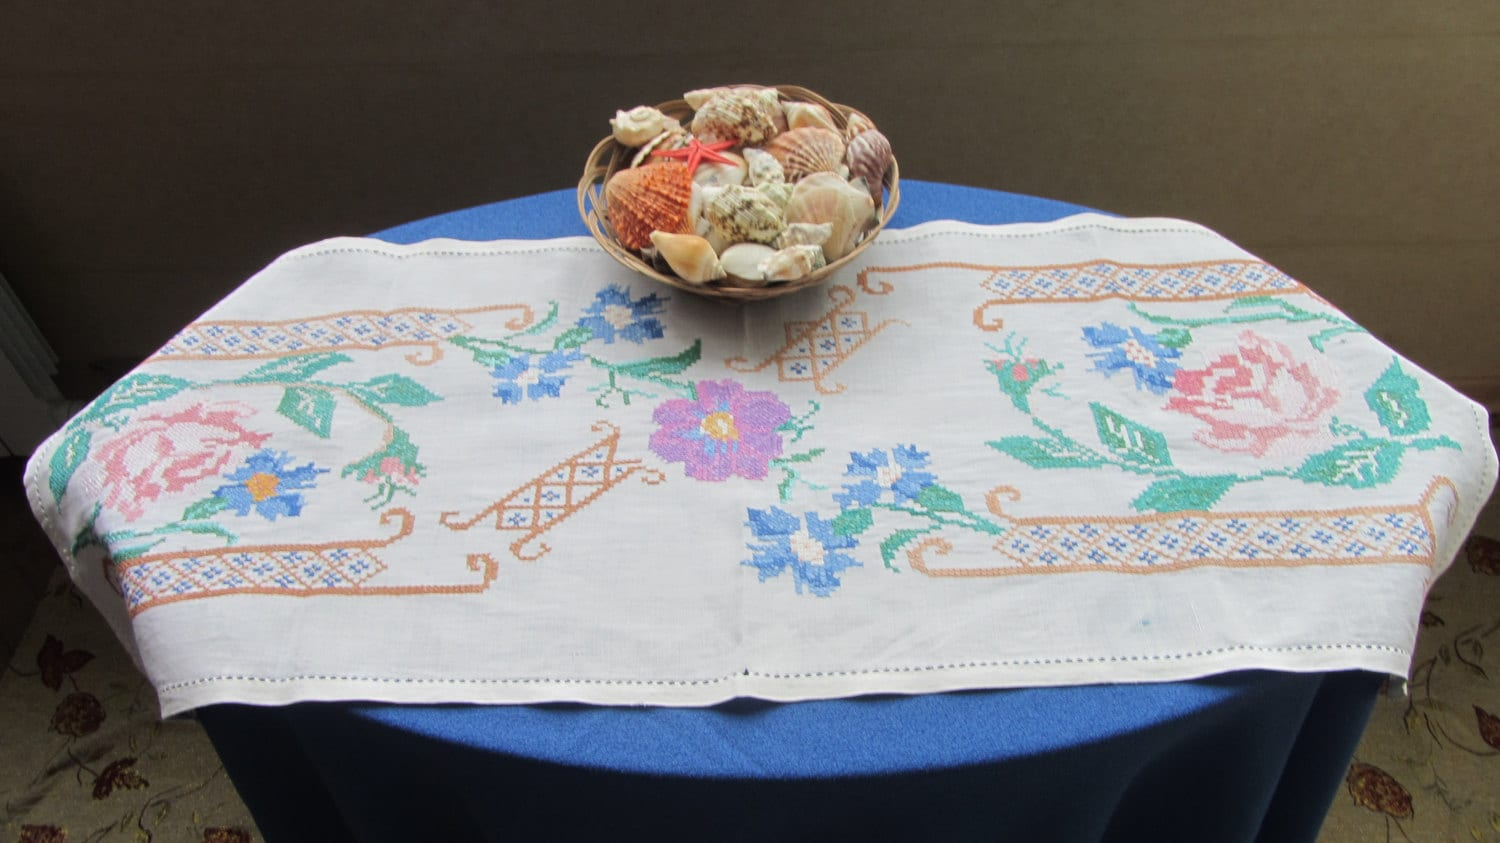 White Table Linen Embroidered Table, Floral Tablecloth, Embroidery Tablecloth, H